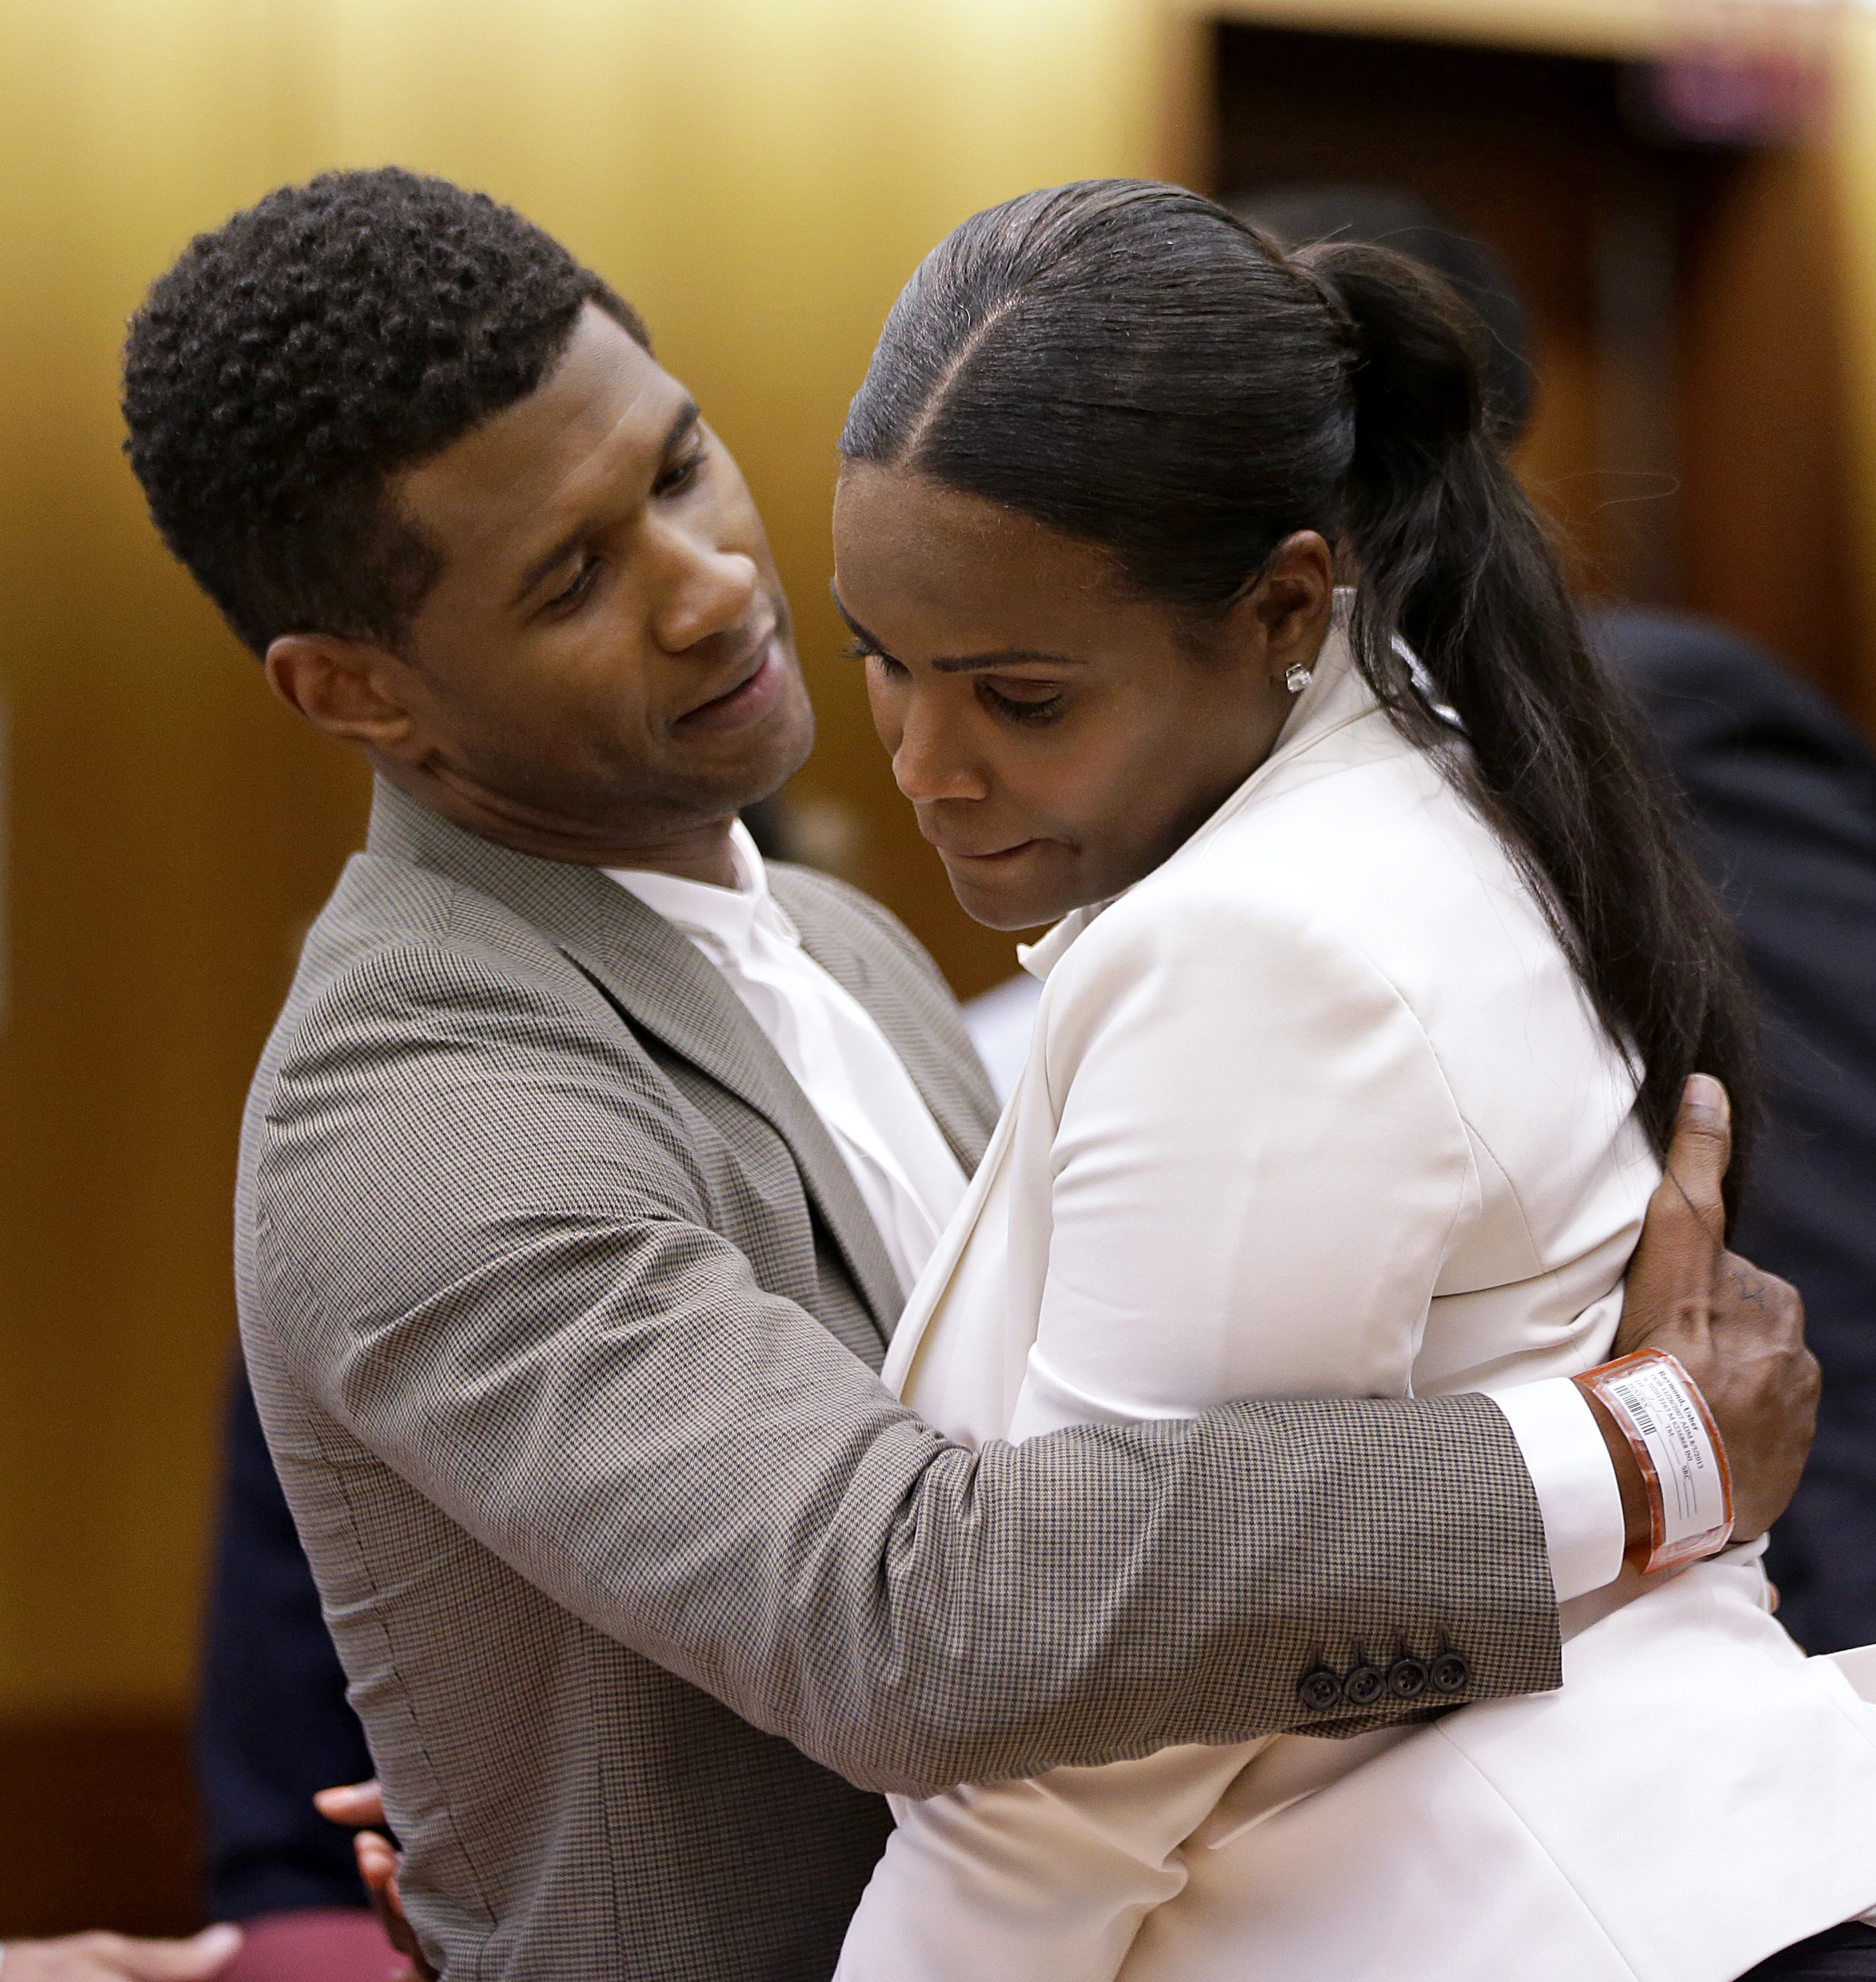 Usher S Ex Wife Loses Bid For Child Custody The